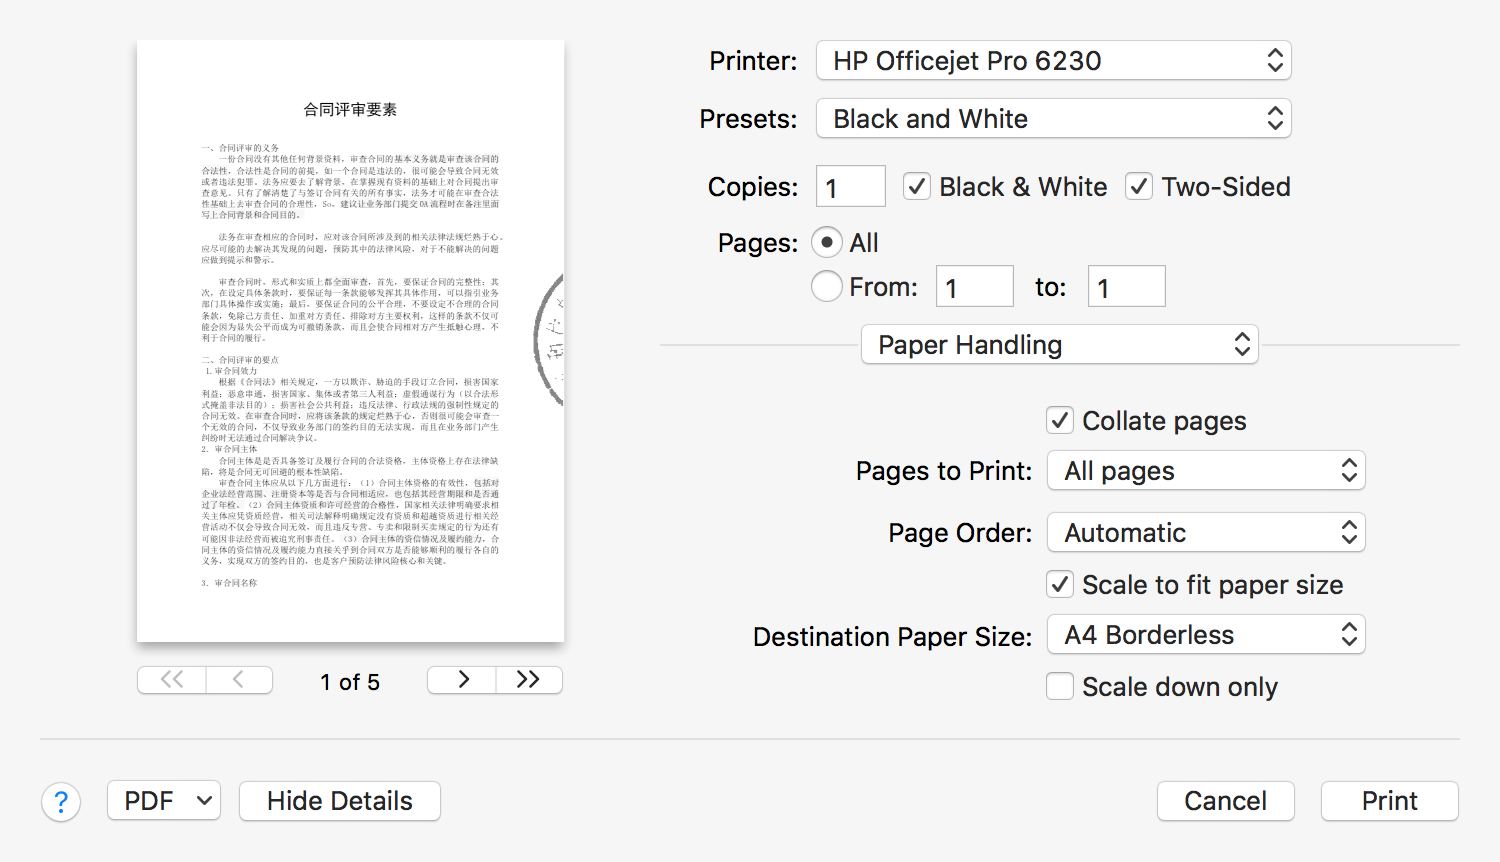 how to custom pagesize with borderless print · Issue #5158